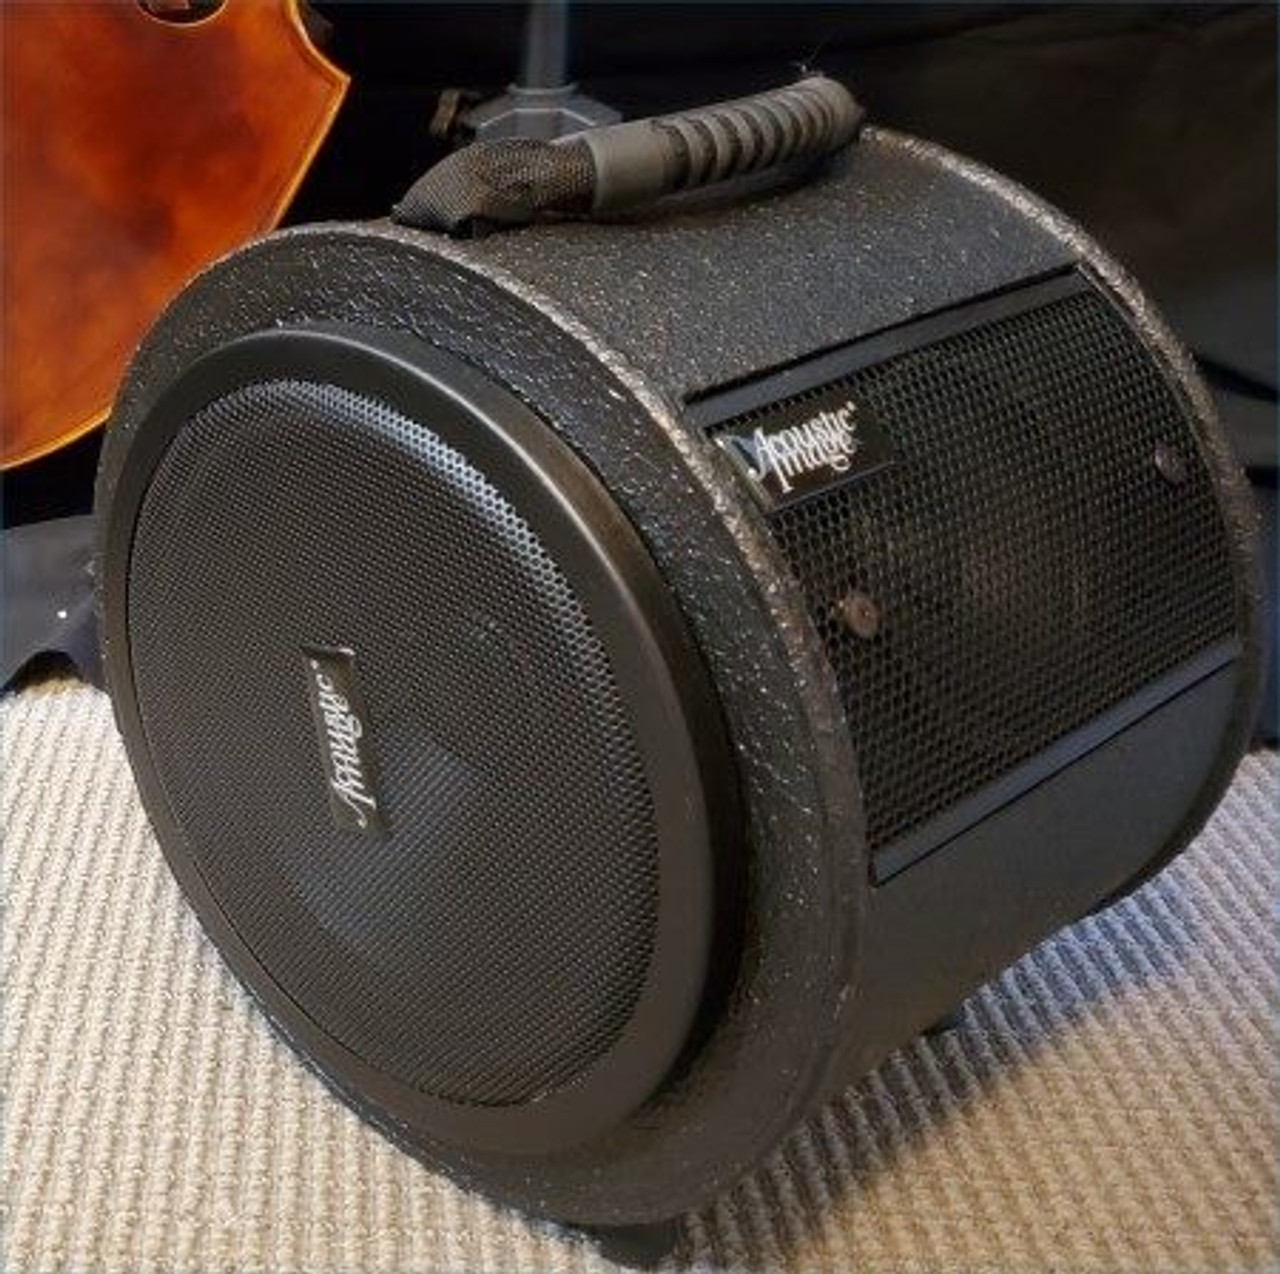 DoubleShot Speaker Cabinet (and combos)